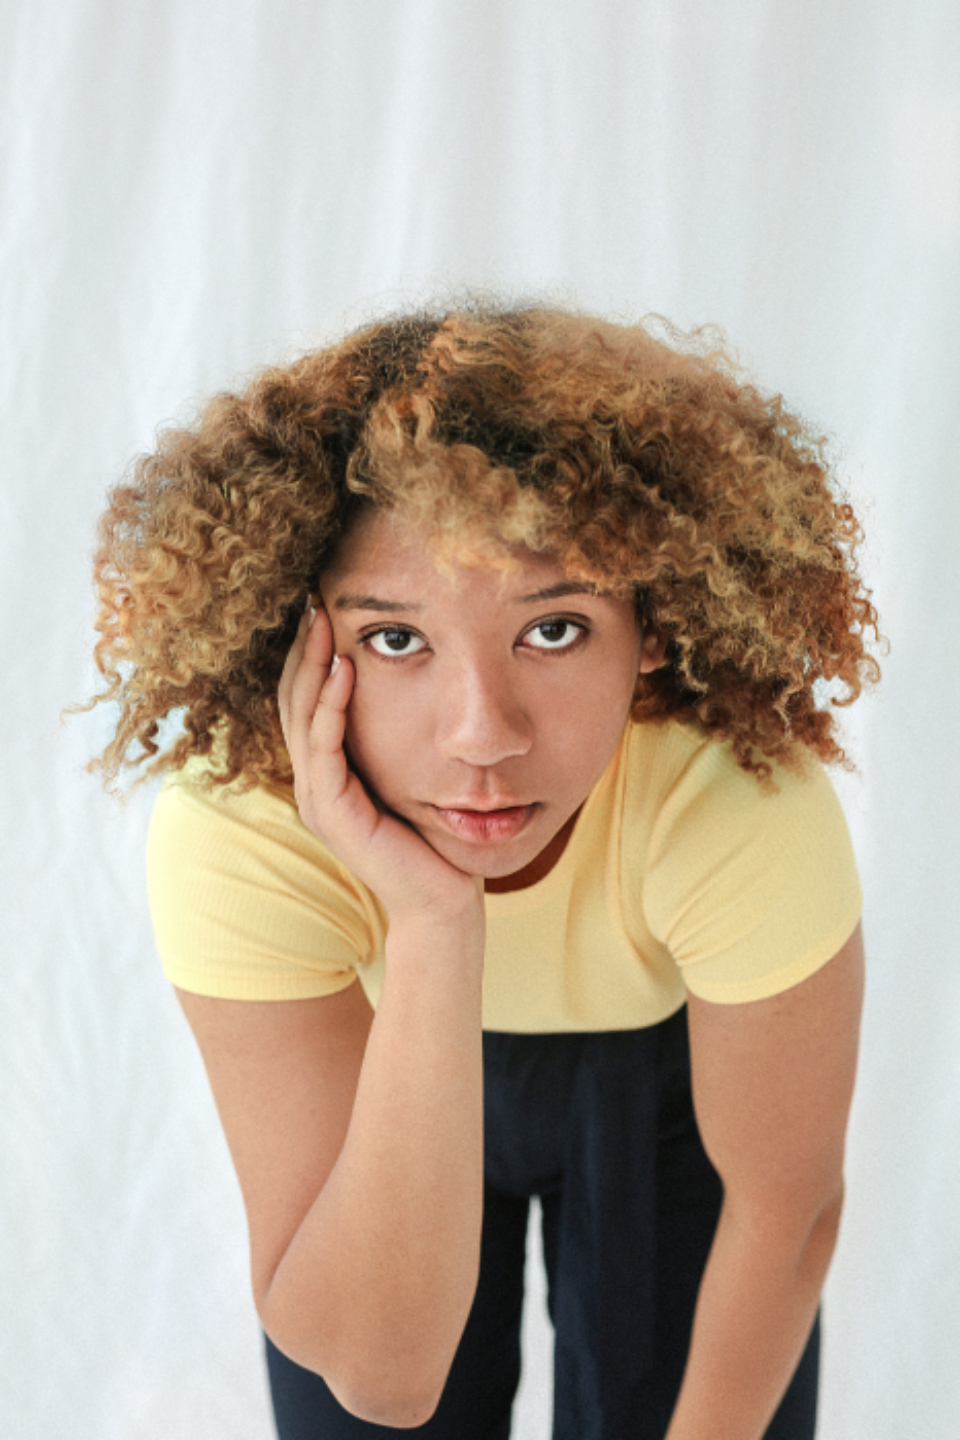 woman hand face thought think yellow t-shirt curly hair black eyes